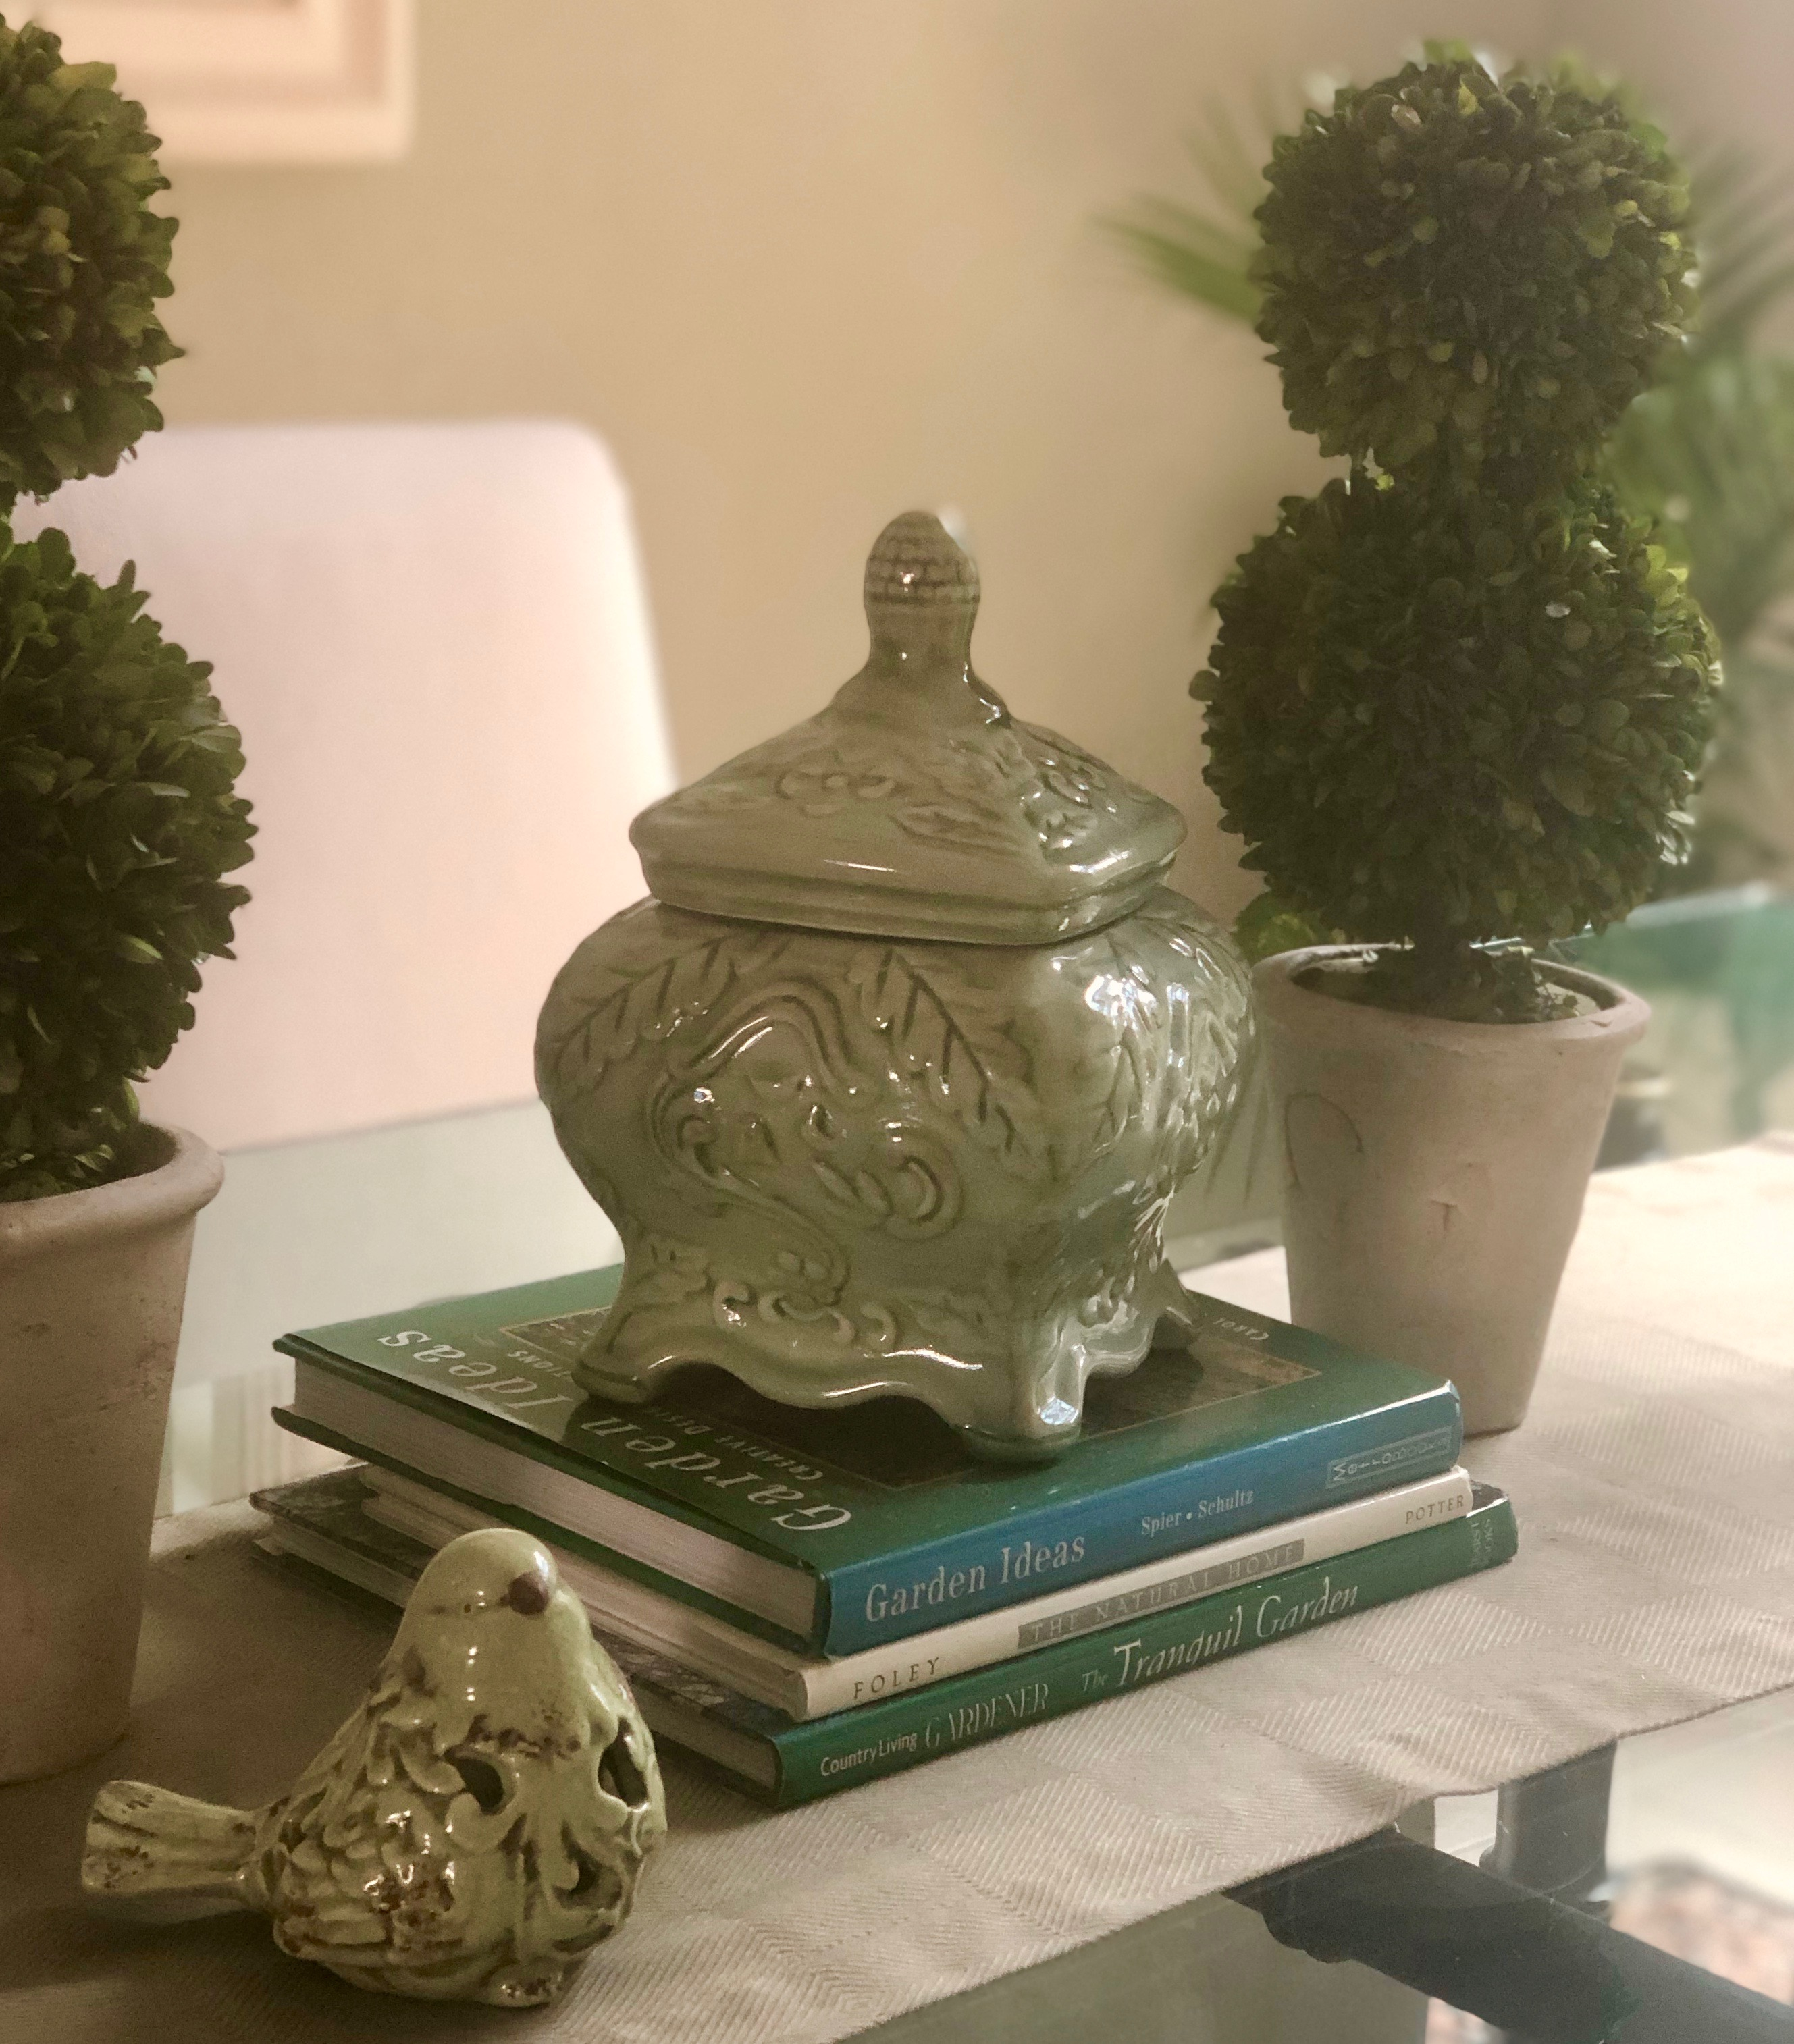 Table with ginger jar, stack of books and topiaries. There is a small green bird in front with a grey/green runner